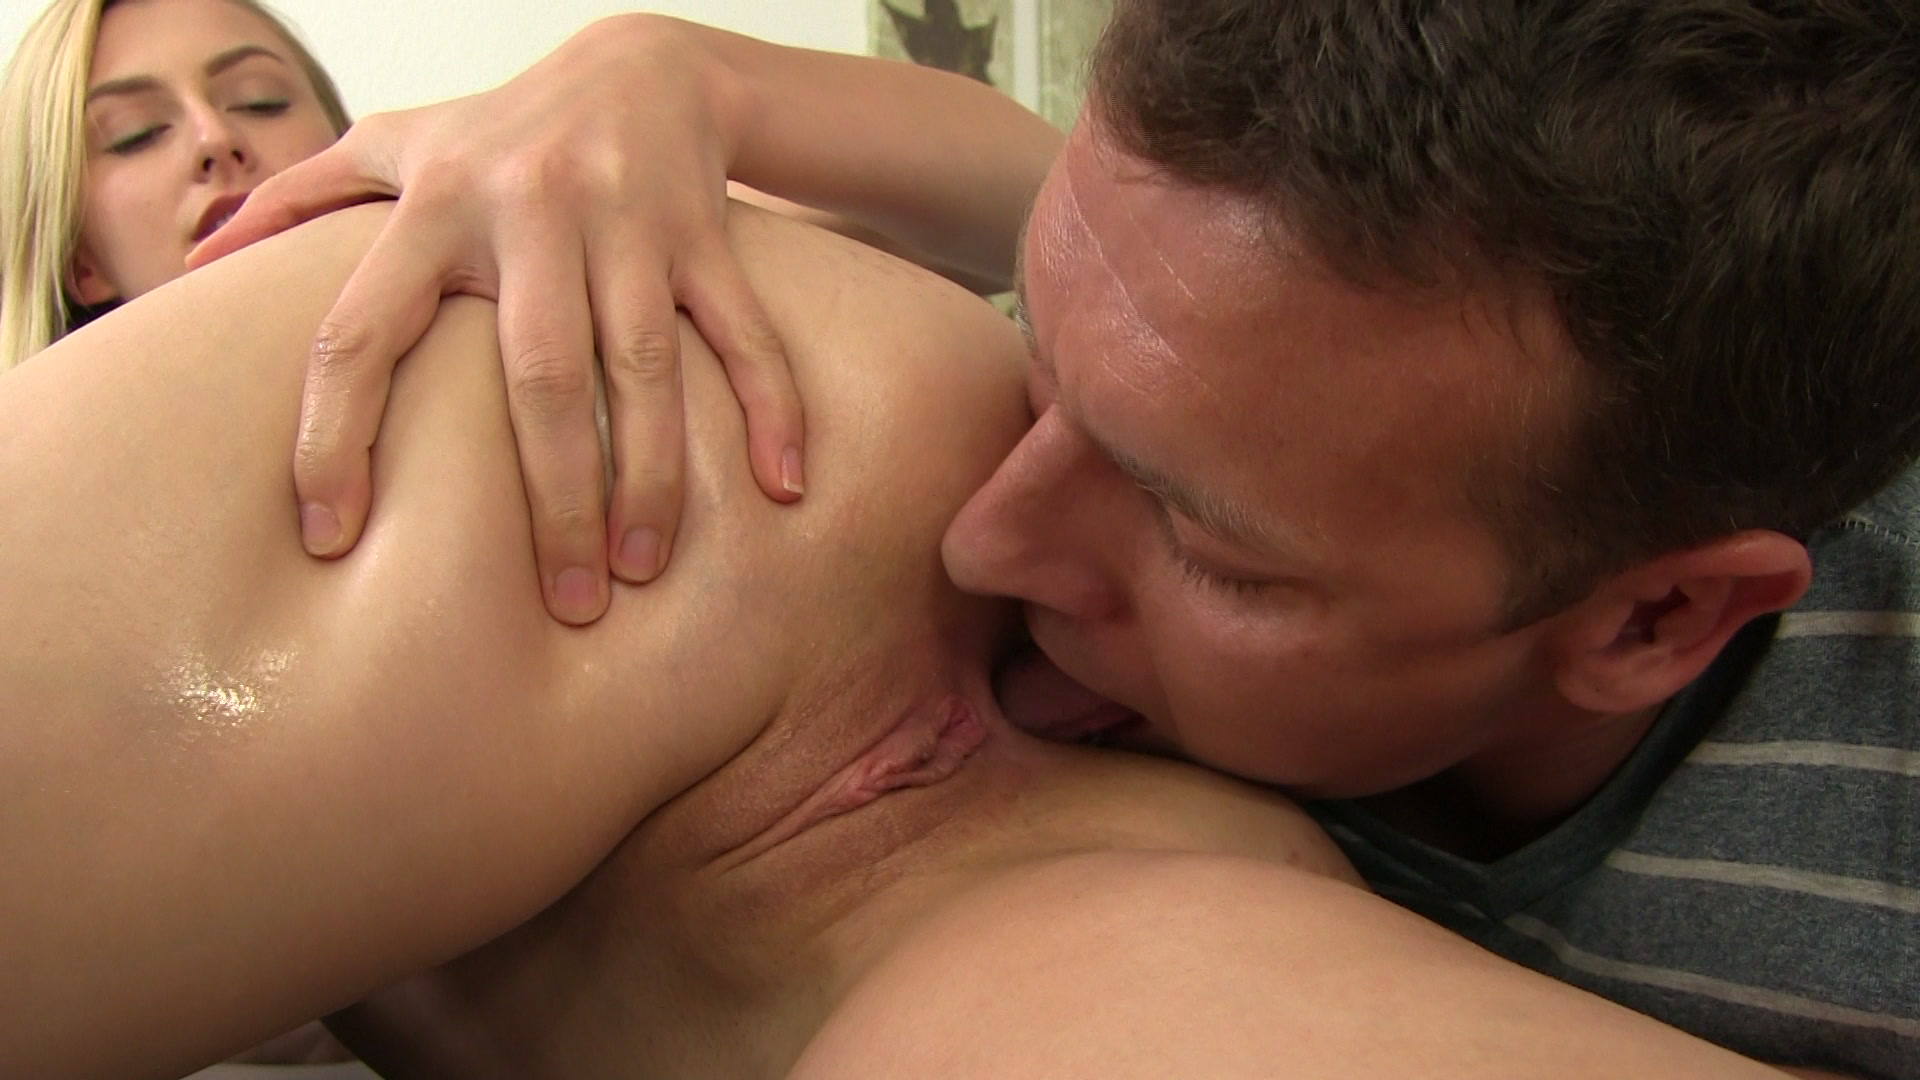 Amazing Pussy Licking Porn Clips With Some Pretty Teens That Need Freaky Sex